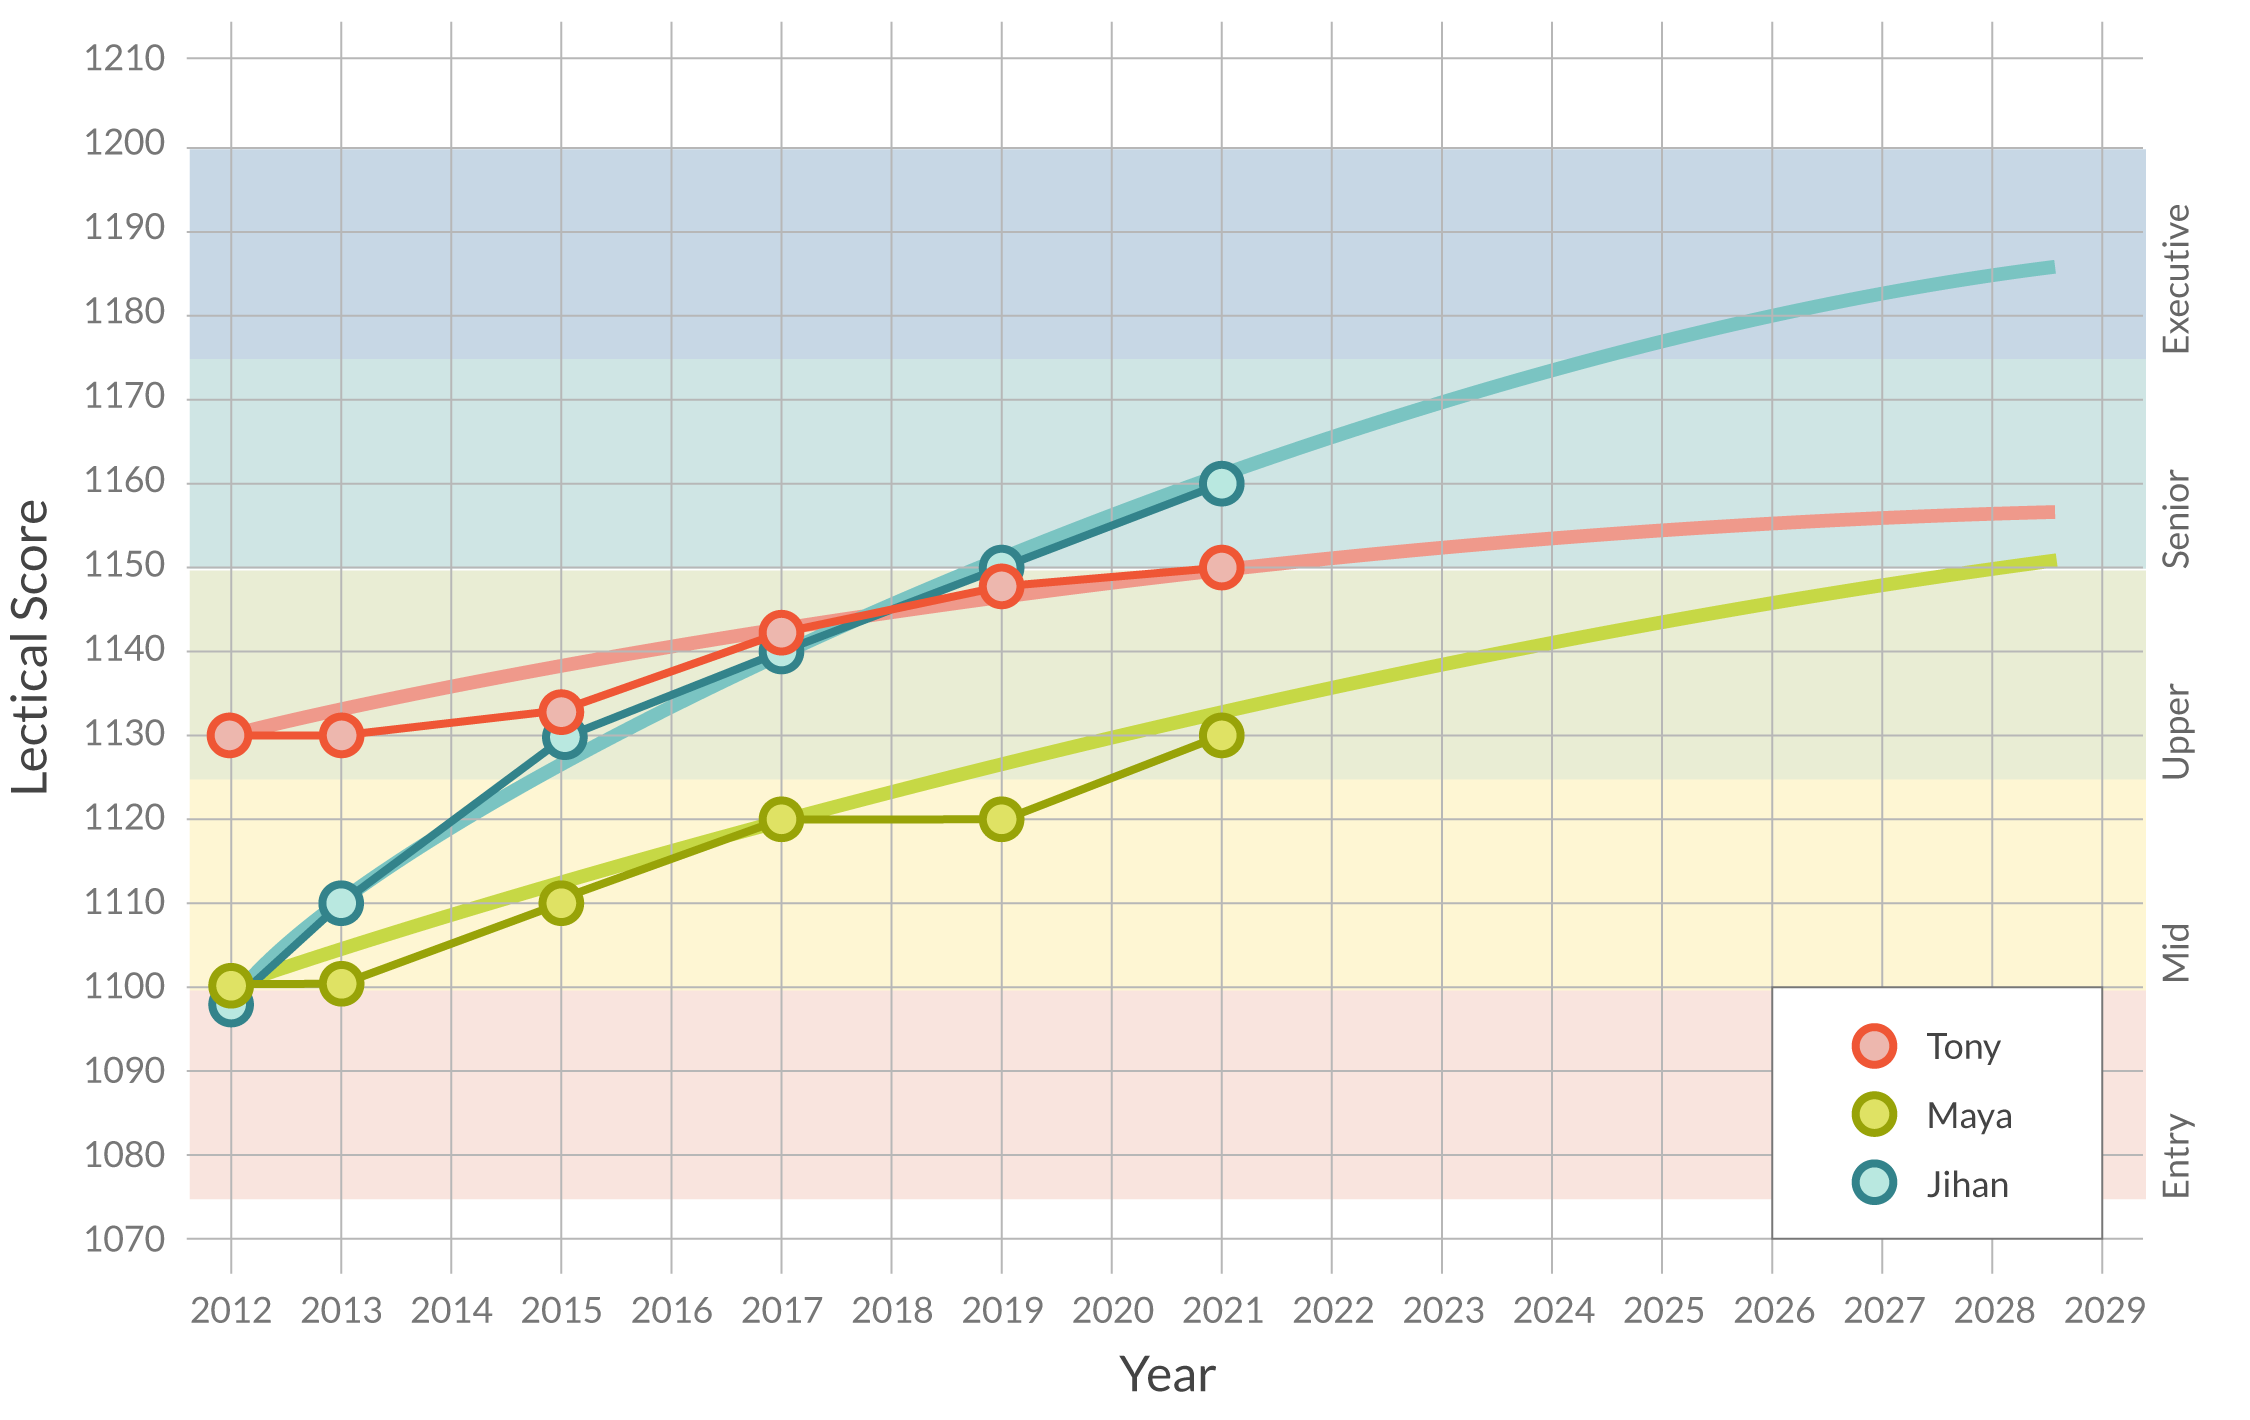 Growth trajectories of three leaders